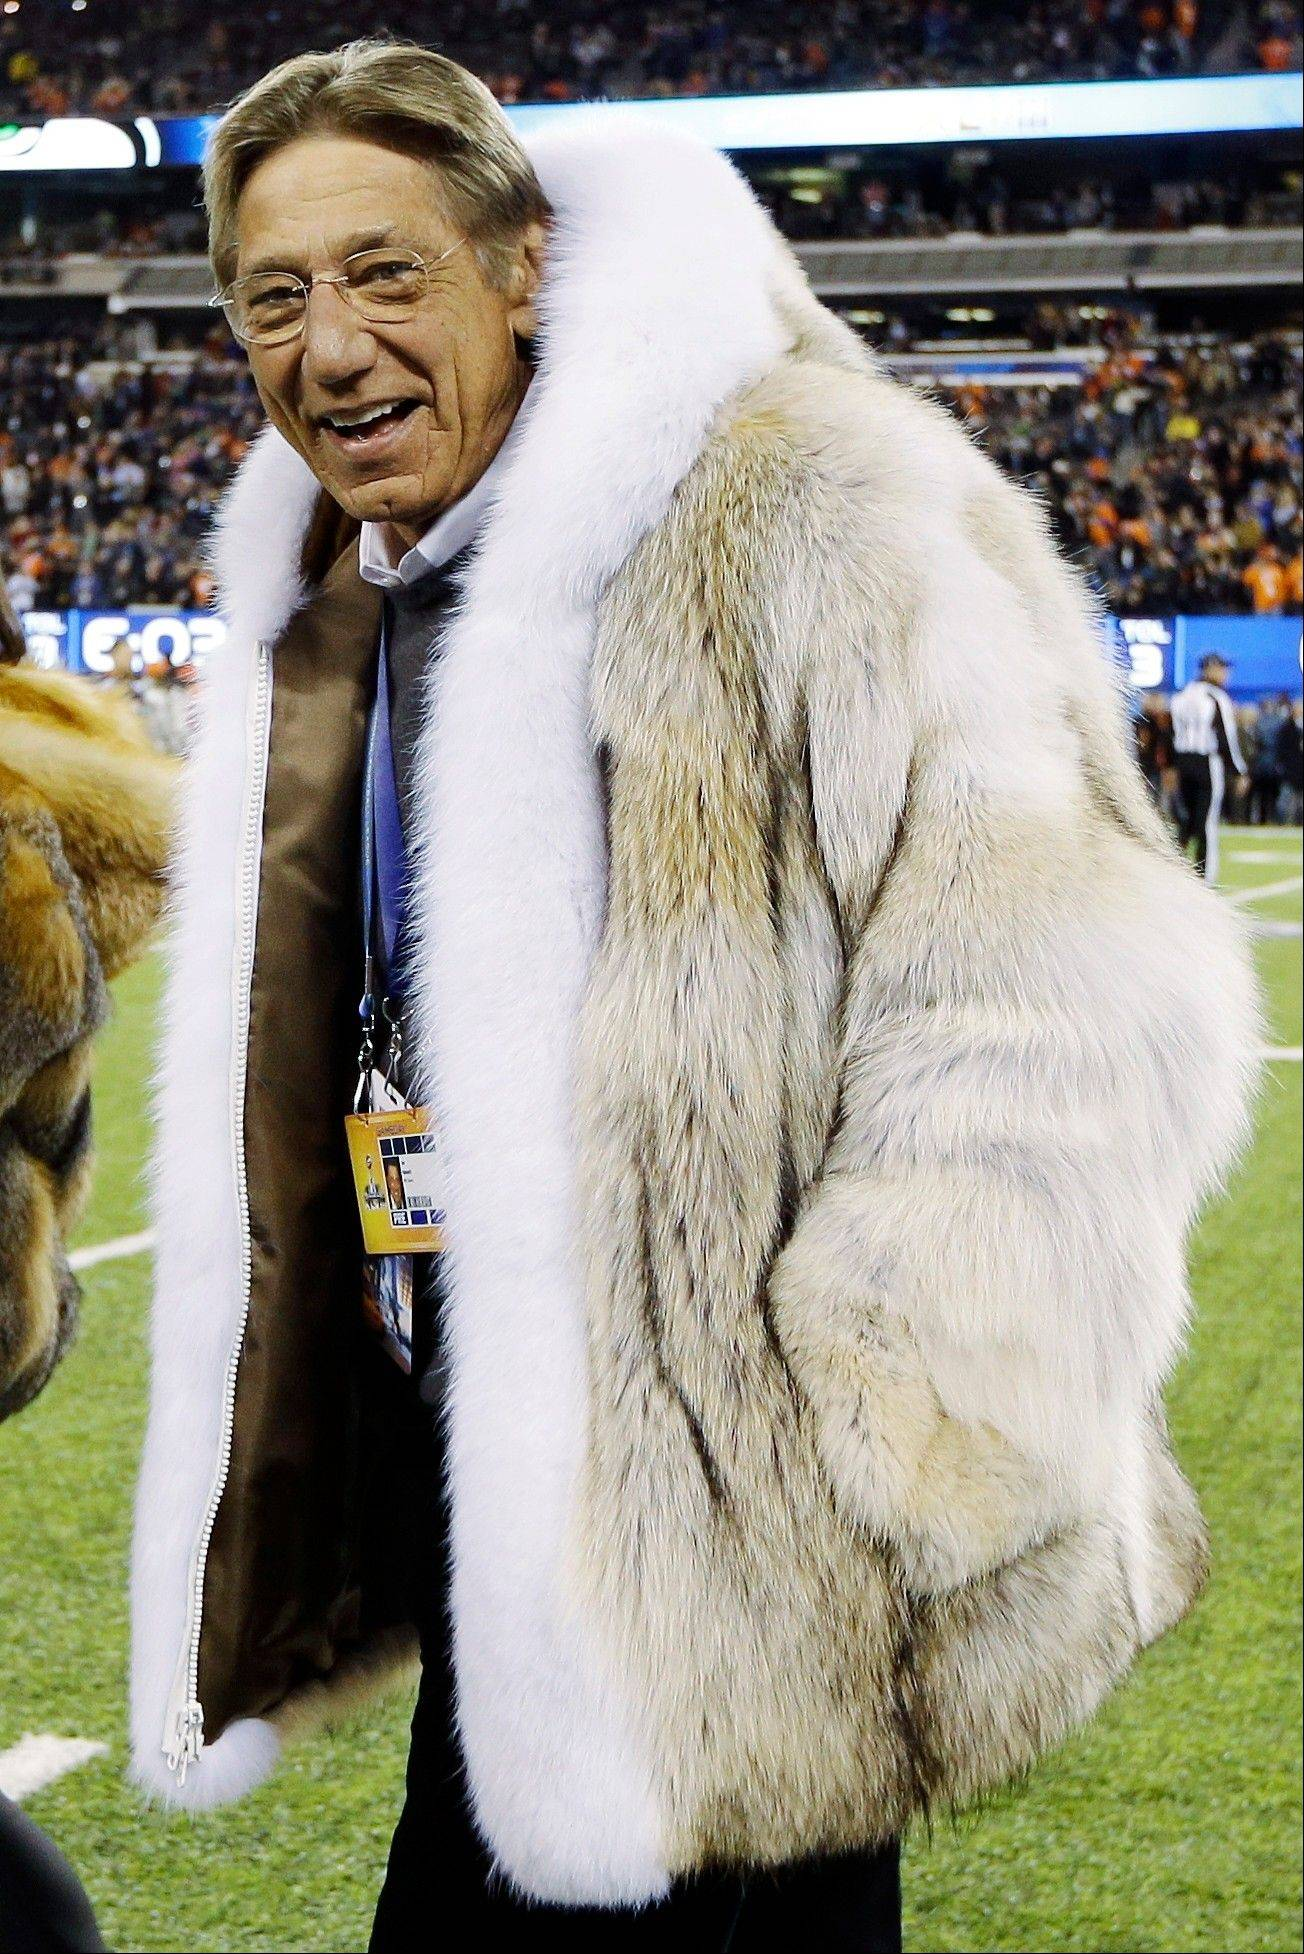 This year�s Super Bowl ads seemed to be upstaged by Joe Namath, at least on social media. When the football hero appeared on the field for the coin toss wearing a massive fur coat, Twitter and other sites buzzed with jokes. The reaction to most ads was much more muted.